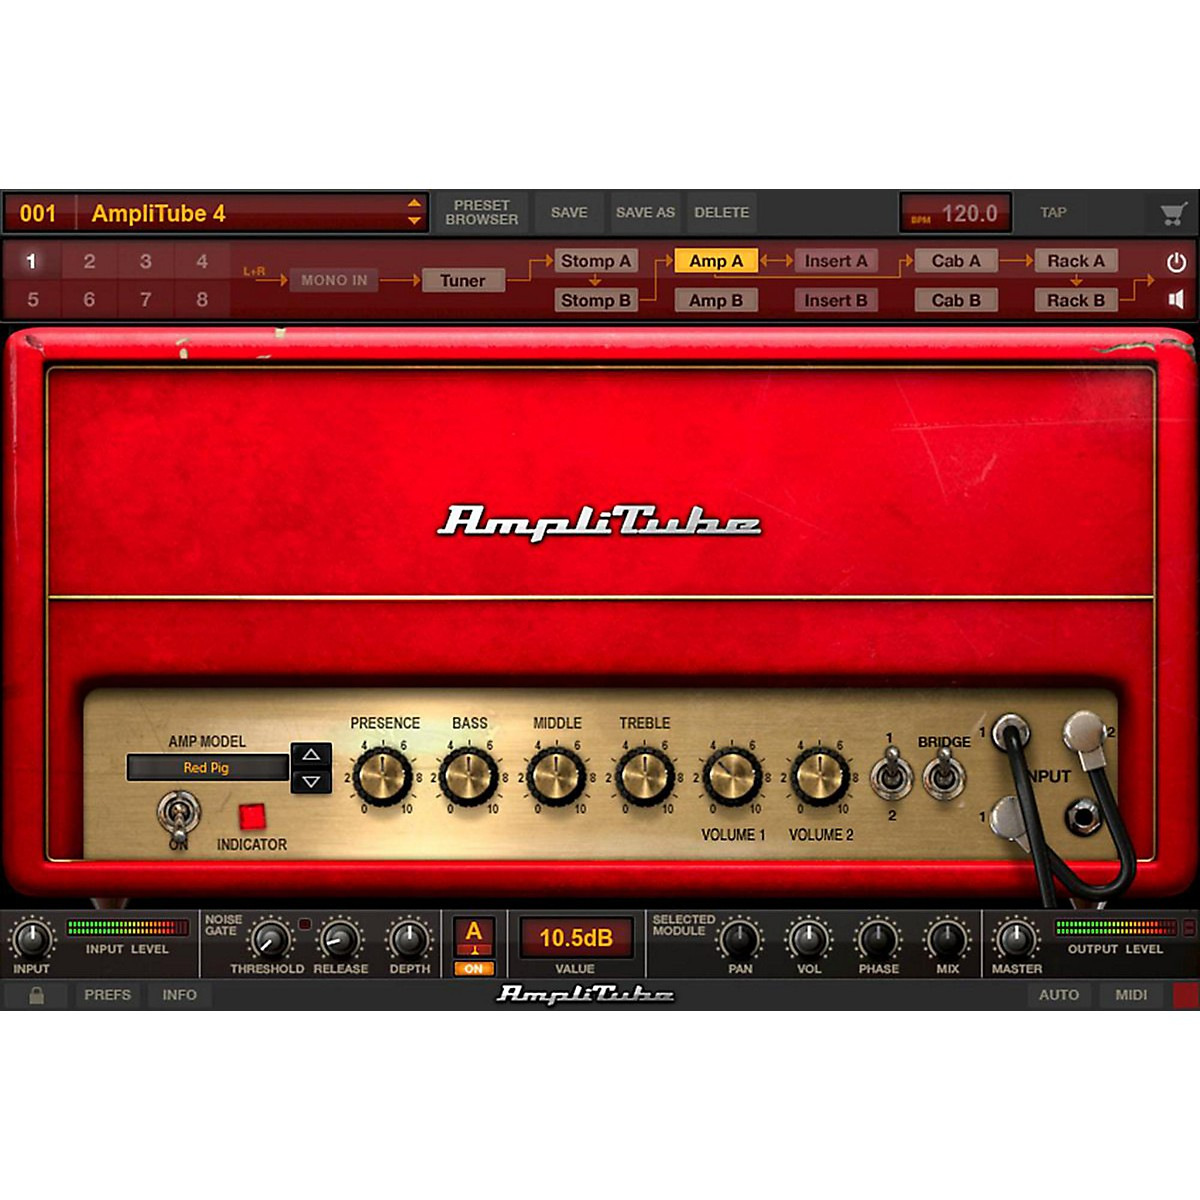 IK Multimedia AmpliTube 4 and Mesa Boogie Combo